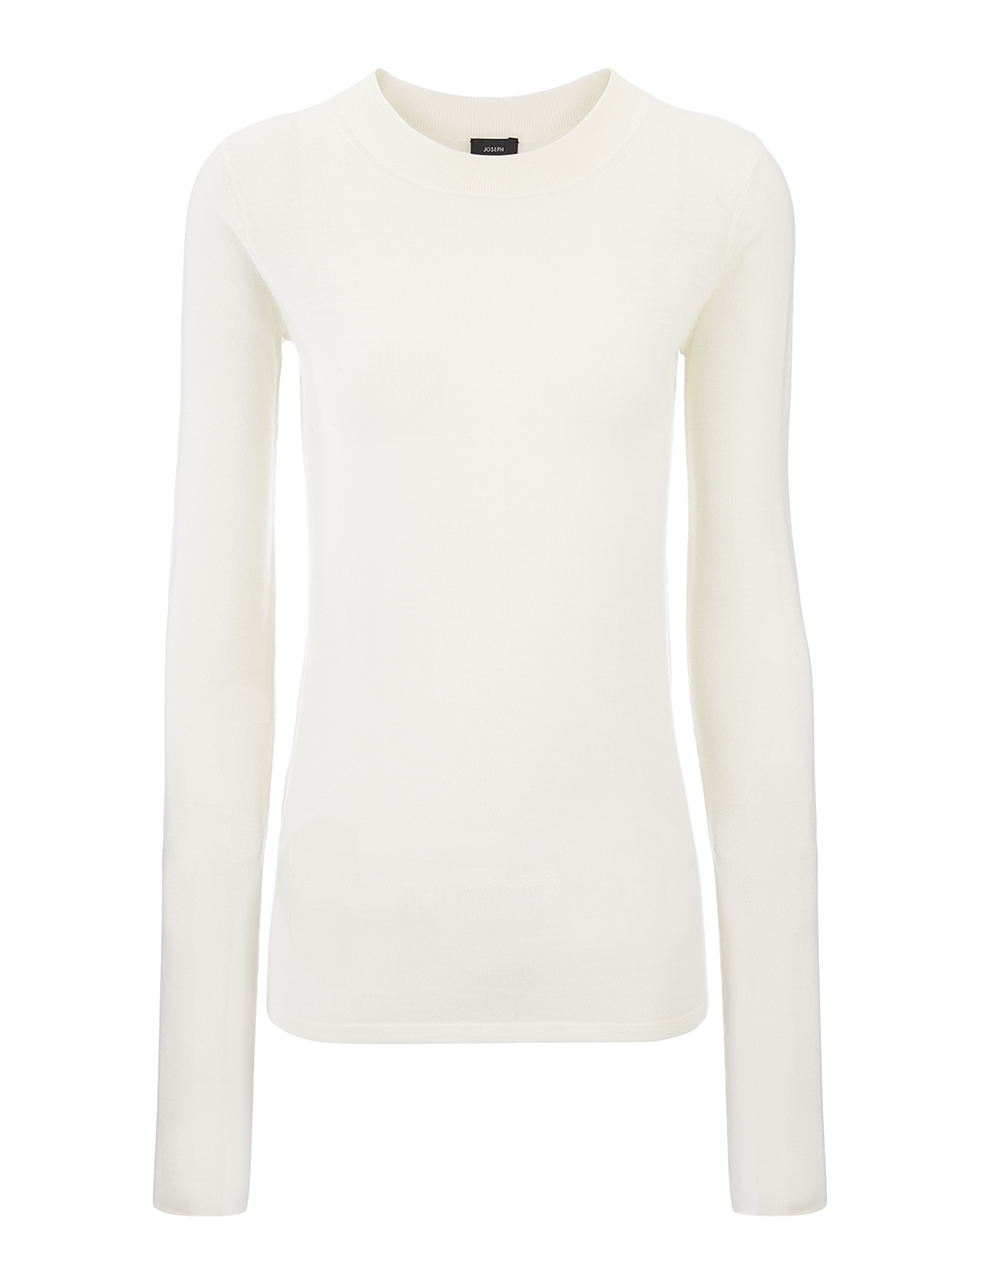 Transparent Knit Top In Ecru - pattern: plain; predominant colour: ivory/cream; occasions: casual; length: standard; style: top; fibres: wool - 100%; fit: body skimming; neckline: crew; sleeve length: long sleeve; sleeve style: standard; texture group: knits/crochet; pattern type: fabric; season: s/s 2016; wardrobe: basic